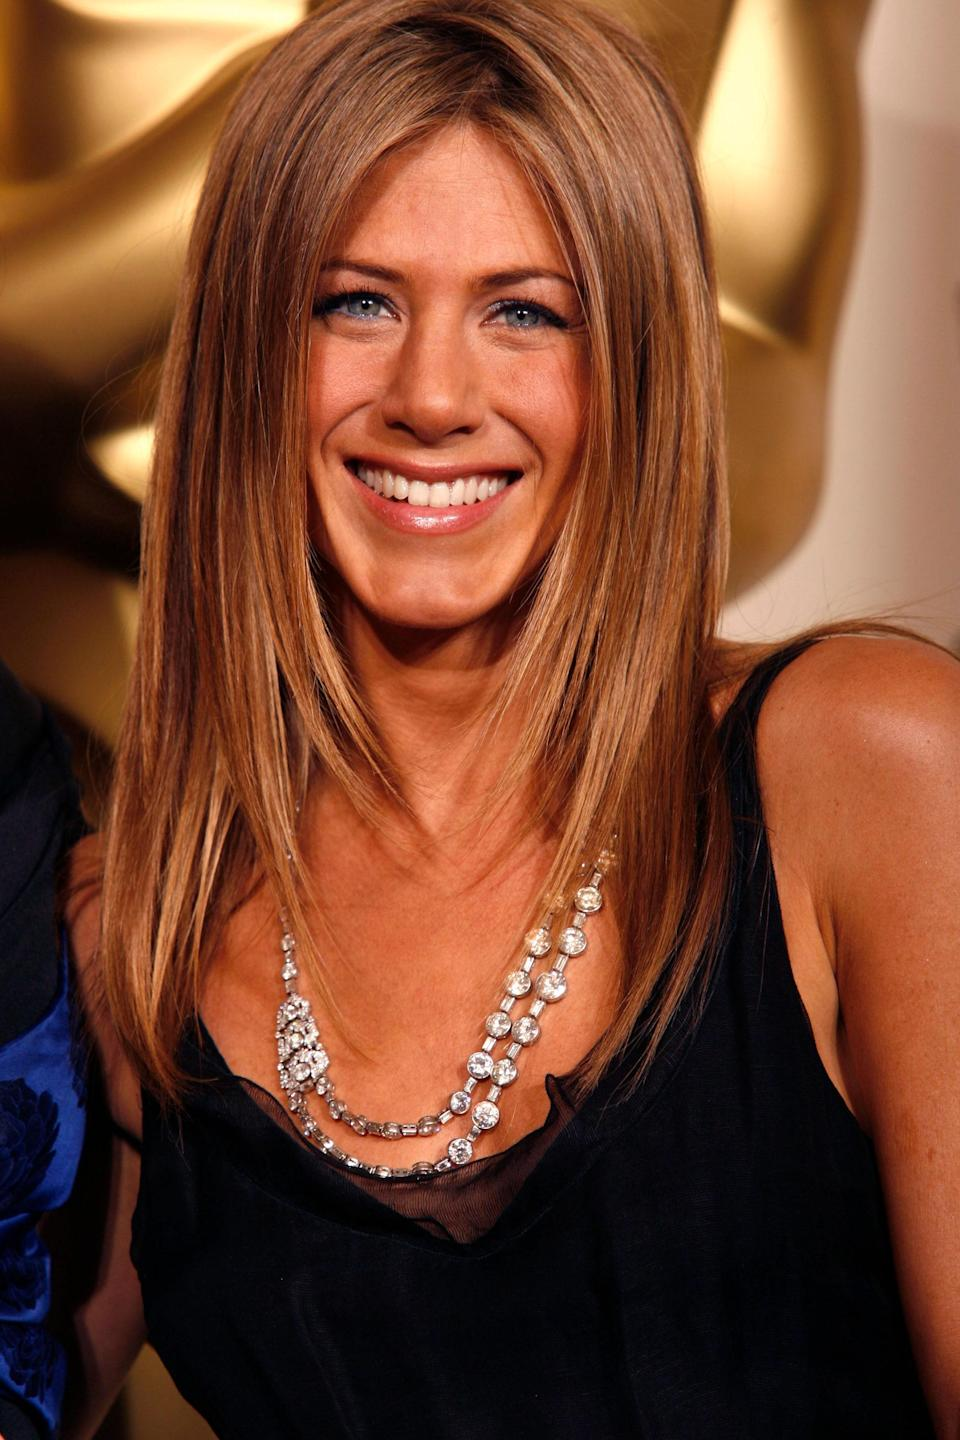 Dresses rarely repeat at the Oscars, but a select number of jewels do. When Jennifer Aniston chose a stunning Art Deco necklace from Bulgari for the 2006 ceremony, the piece proved irresistible. The lengthy chain with 137 carats worth of diamonds was so appealing, in fact, that Ashley Judd revisited it a decade later.